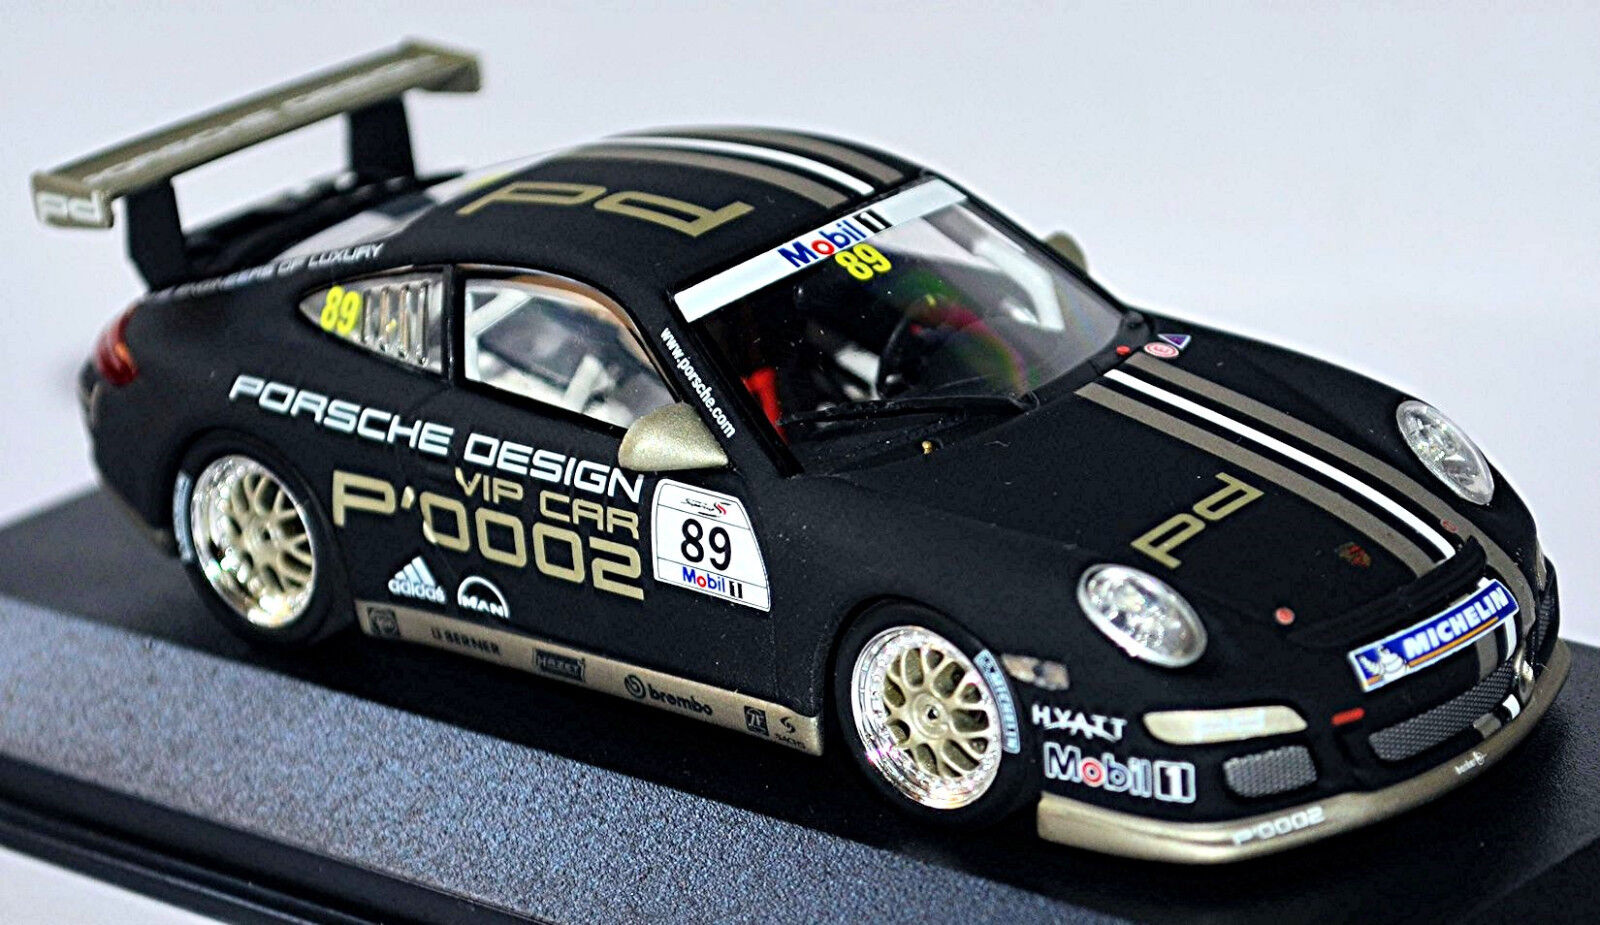 Porsche 911 GT3 Cup 997  89 Carrera Cup 2007 V.I.P. Car P´0002 - 1 43 Minichamps  | Up-to-date Styling